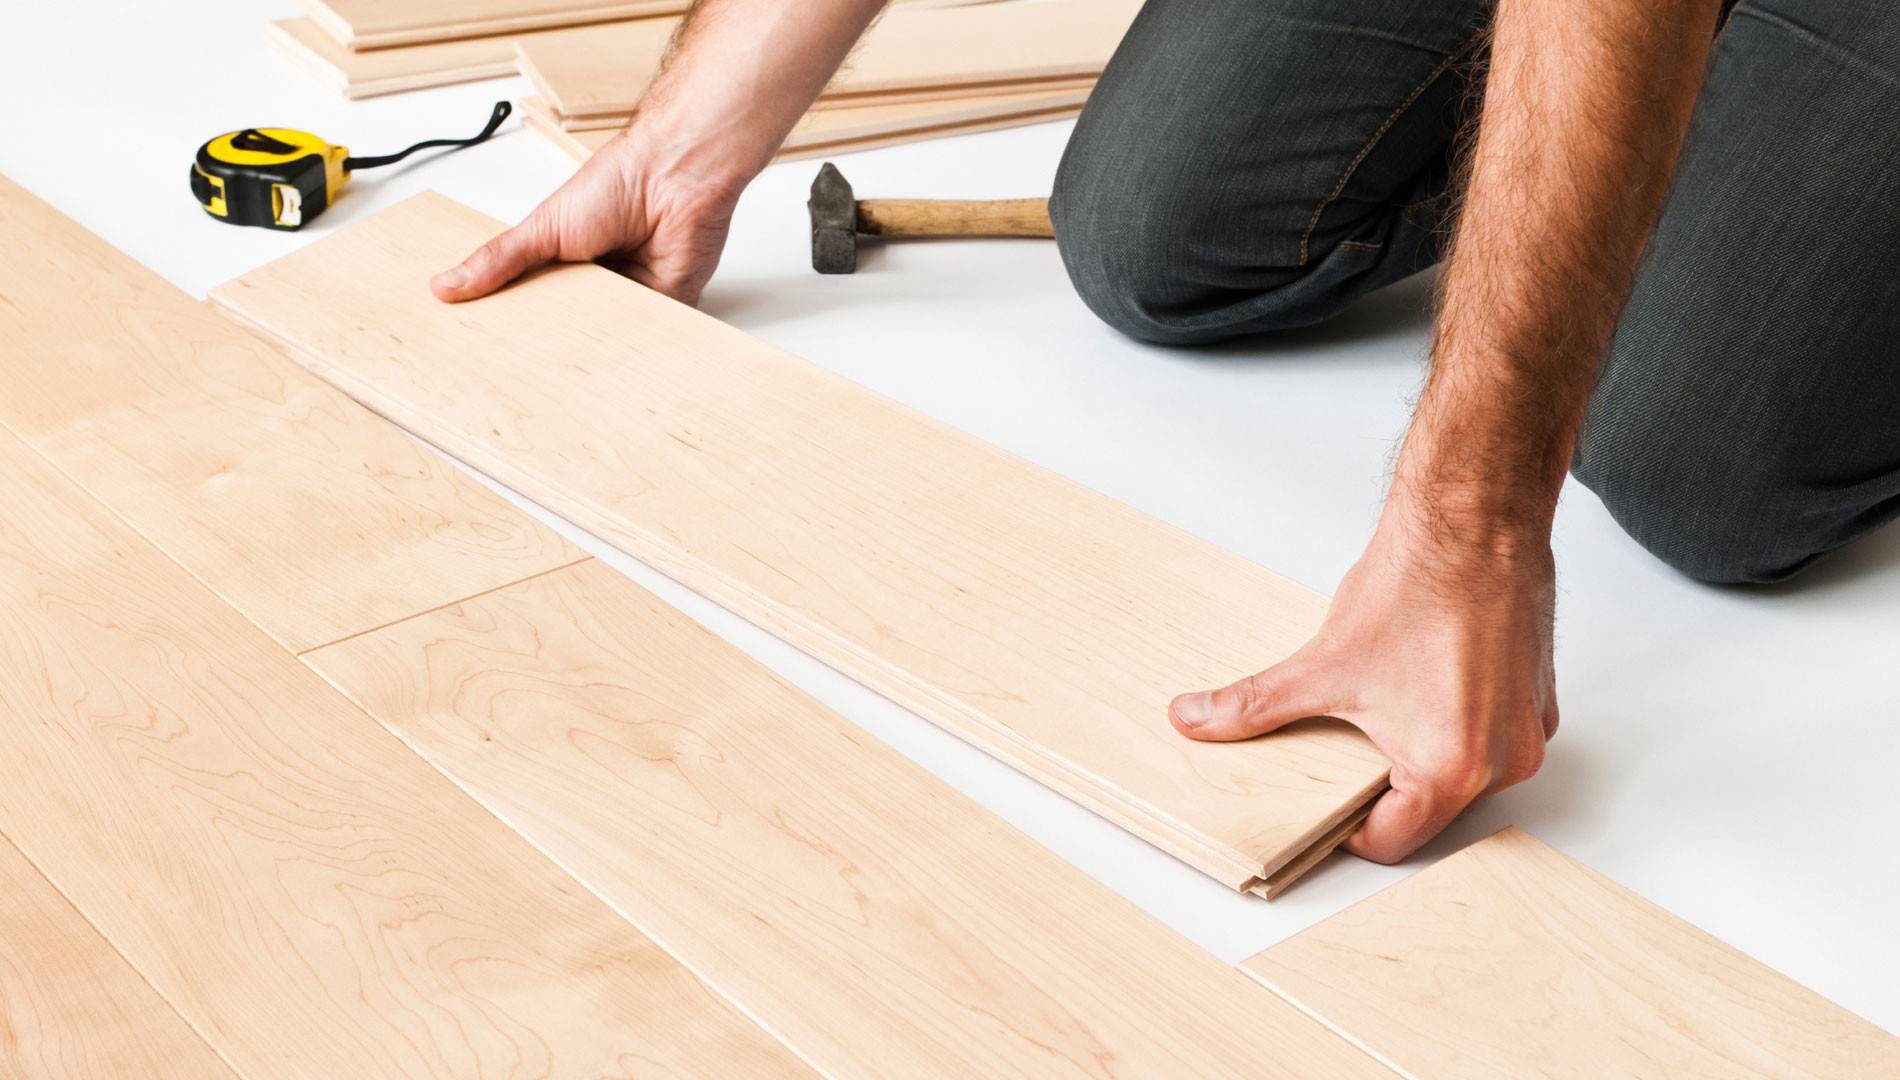 Lauzon Hardwood Flooring Distributors Of Expert Engineered Lauzon Hardwood Flooring Throughout Lauzon Hardwood Flooring Construction Expert1